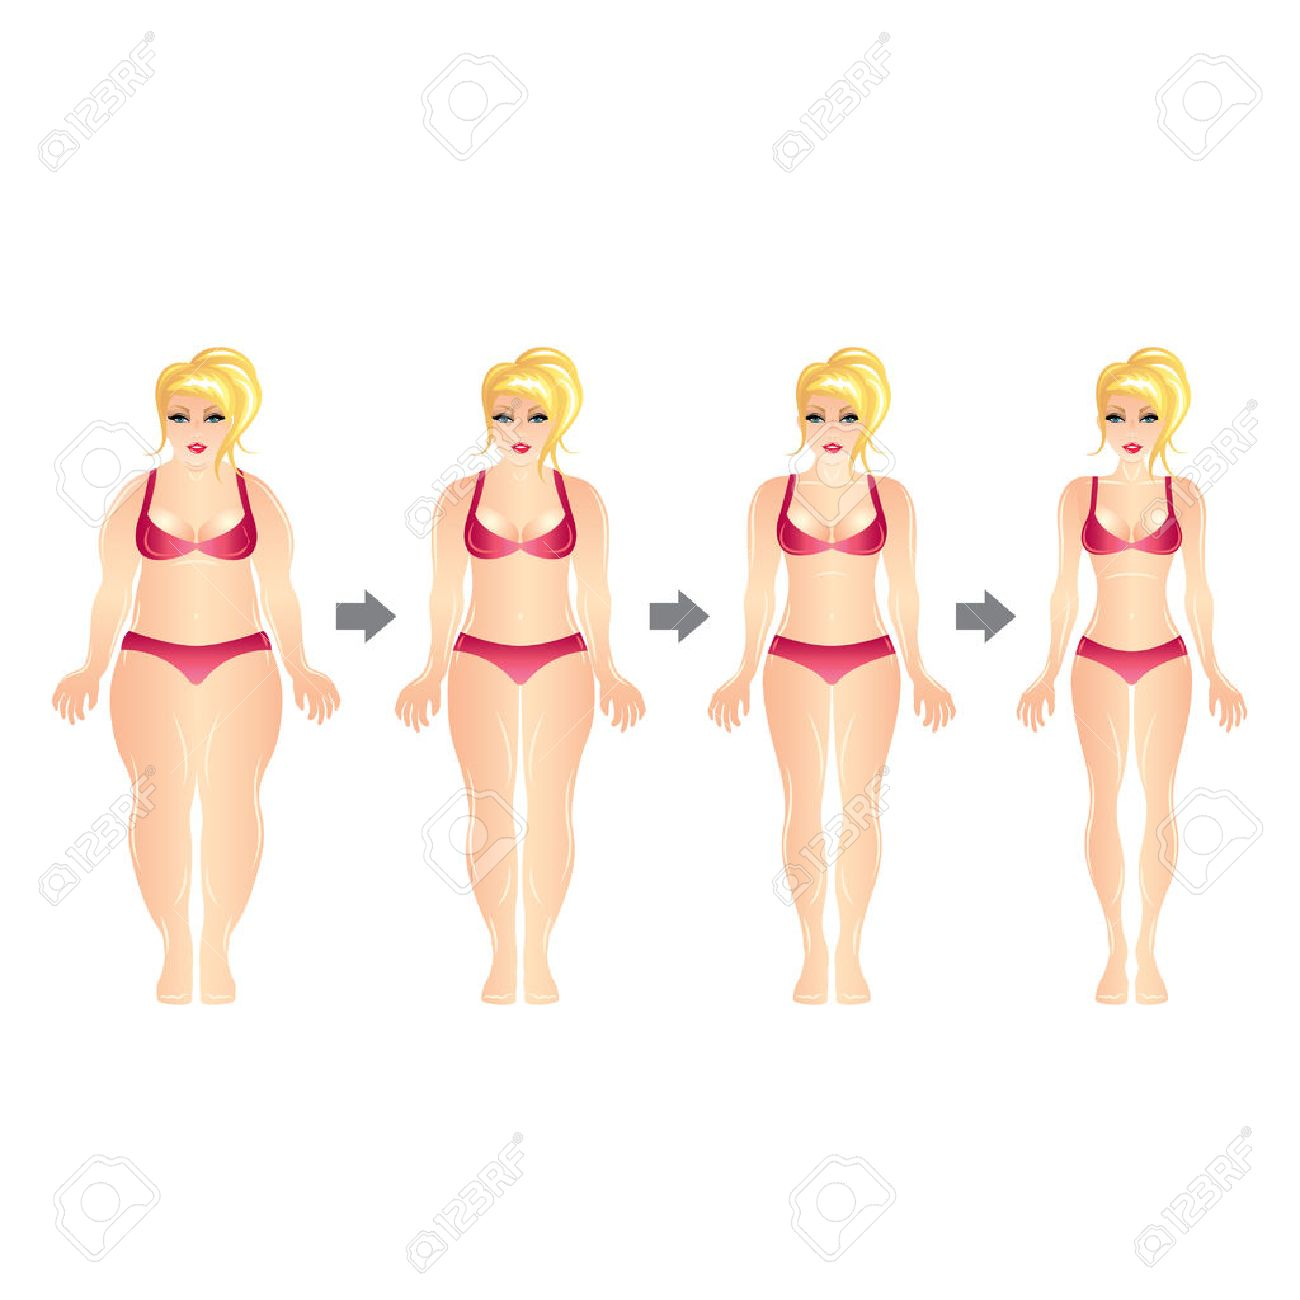 791 Liposuction Stock Illustrations, Cliparts And Royalty Free ...